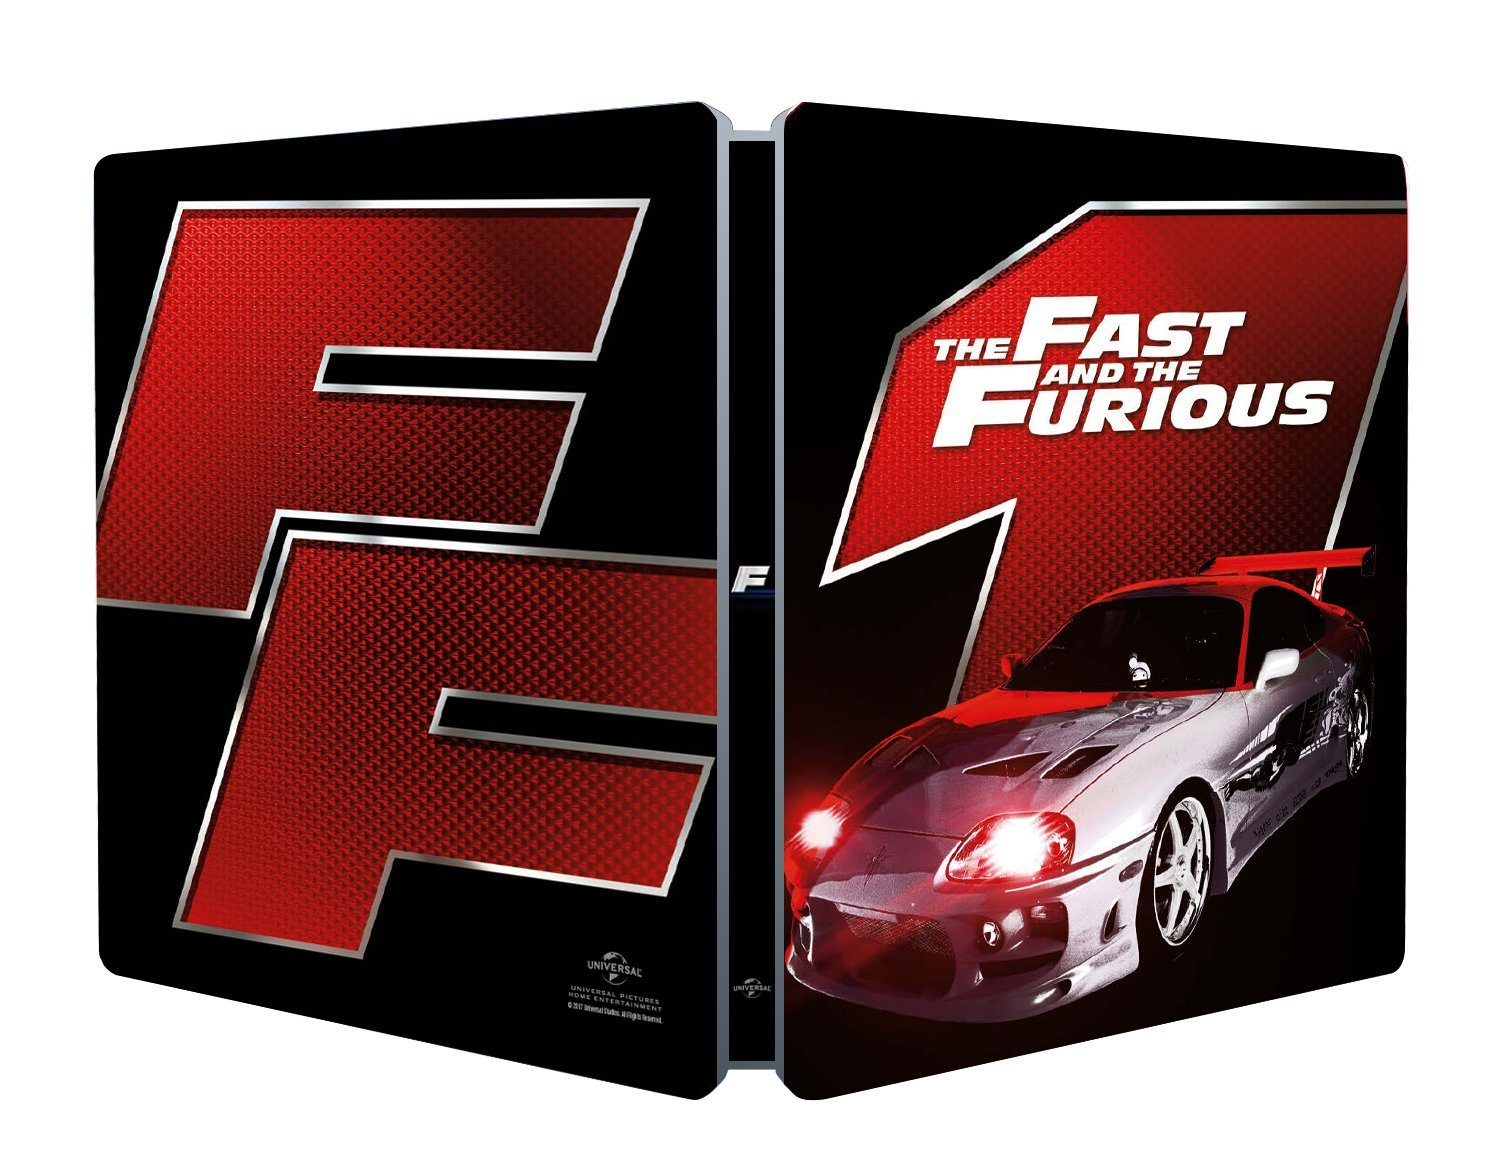 FAST & THE FURIOUS (STEELBOOK)